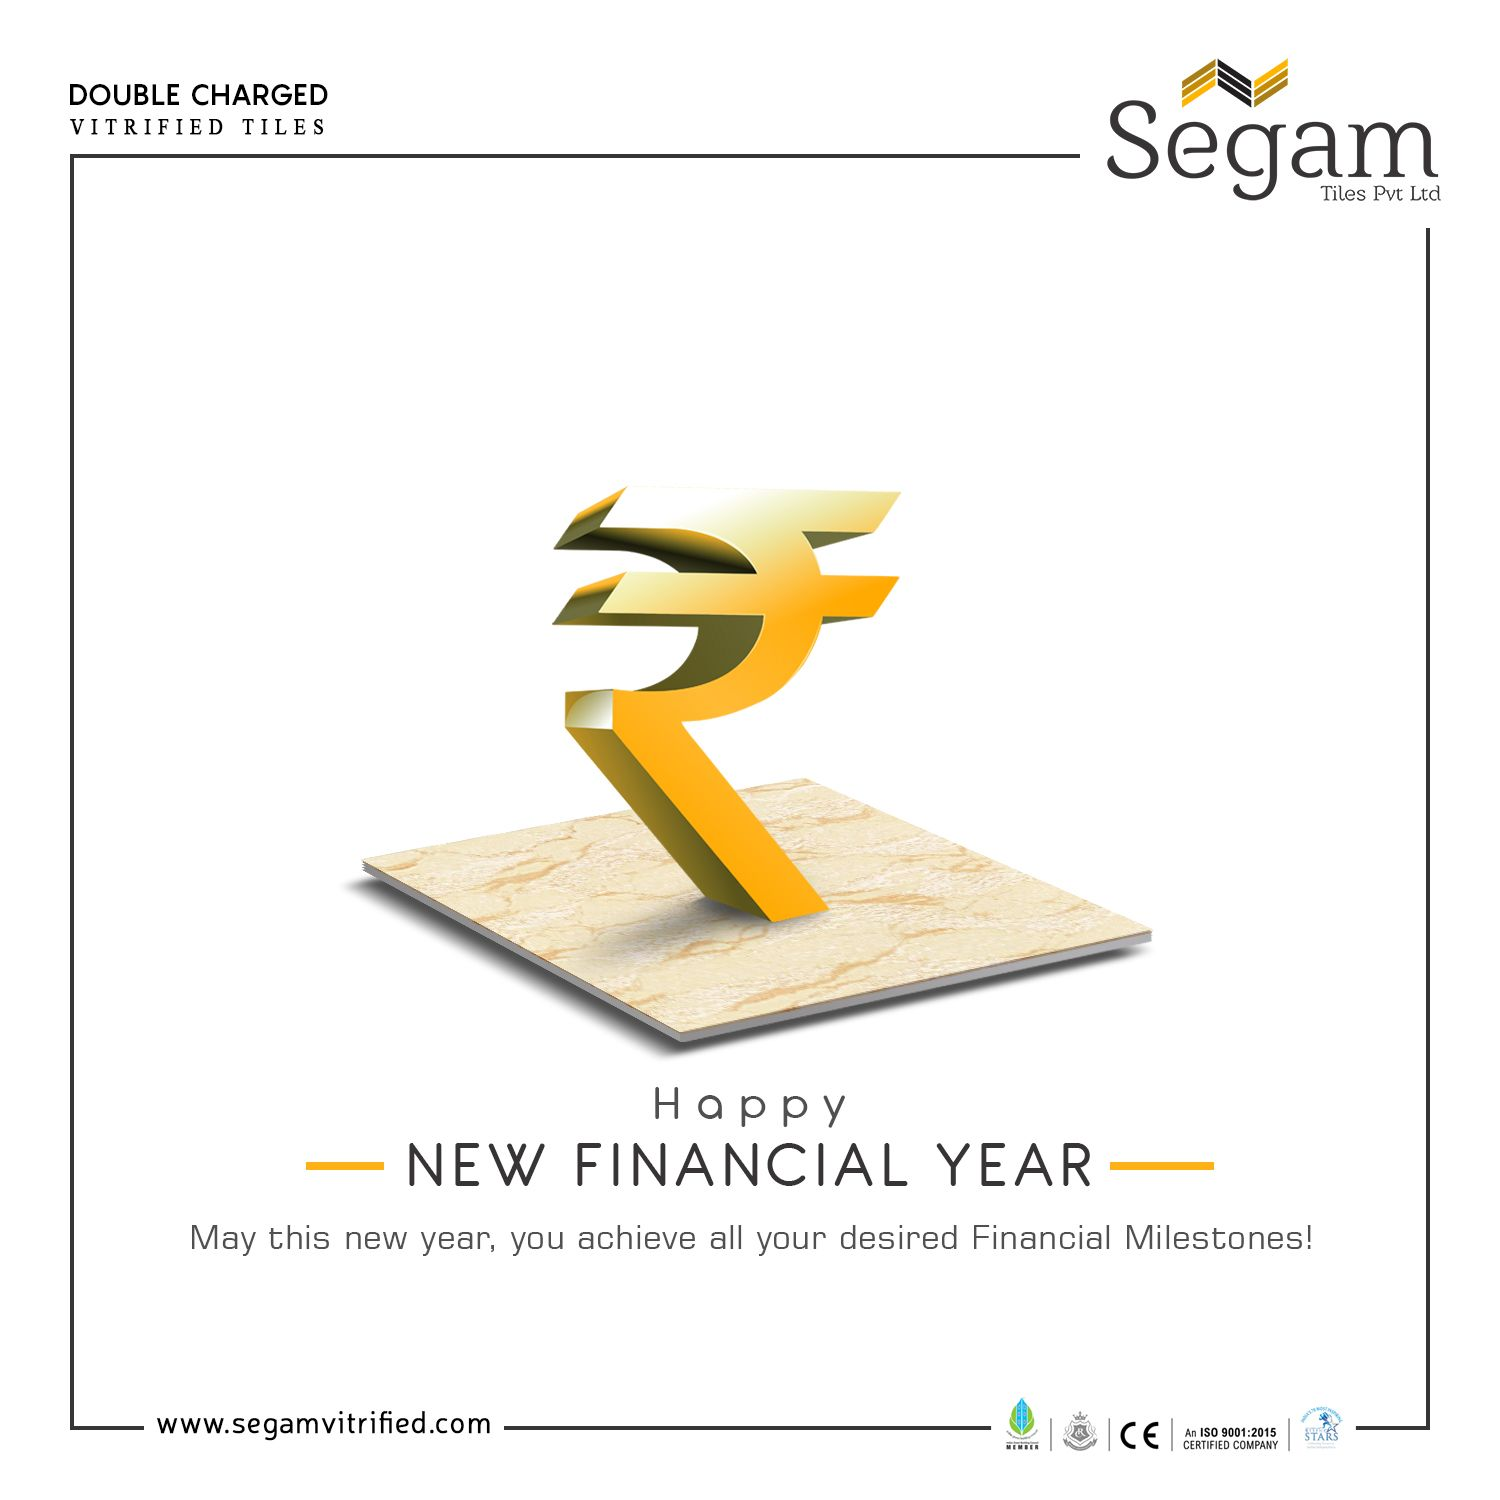 May this new year, you achieve all desired financial